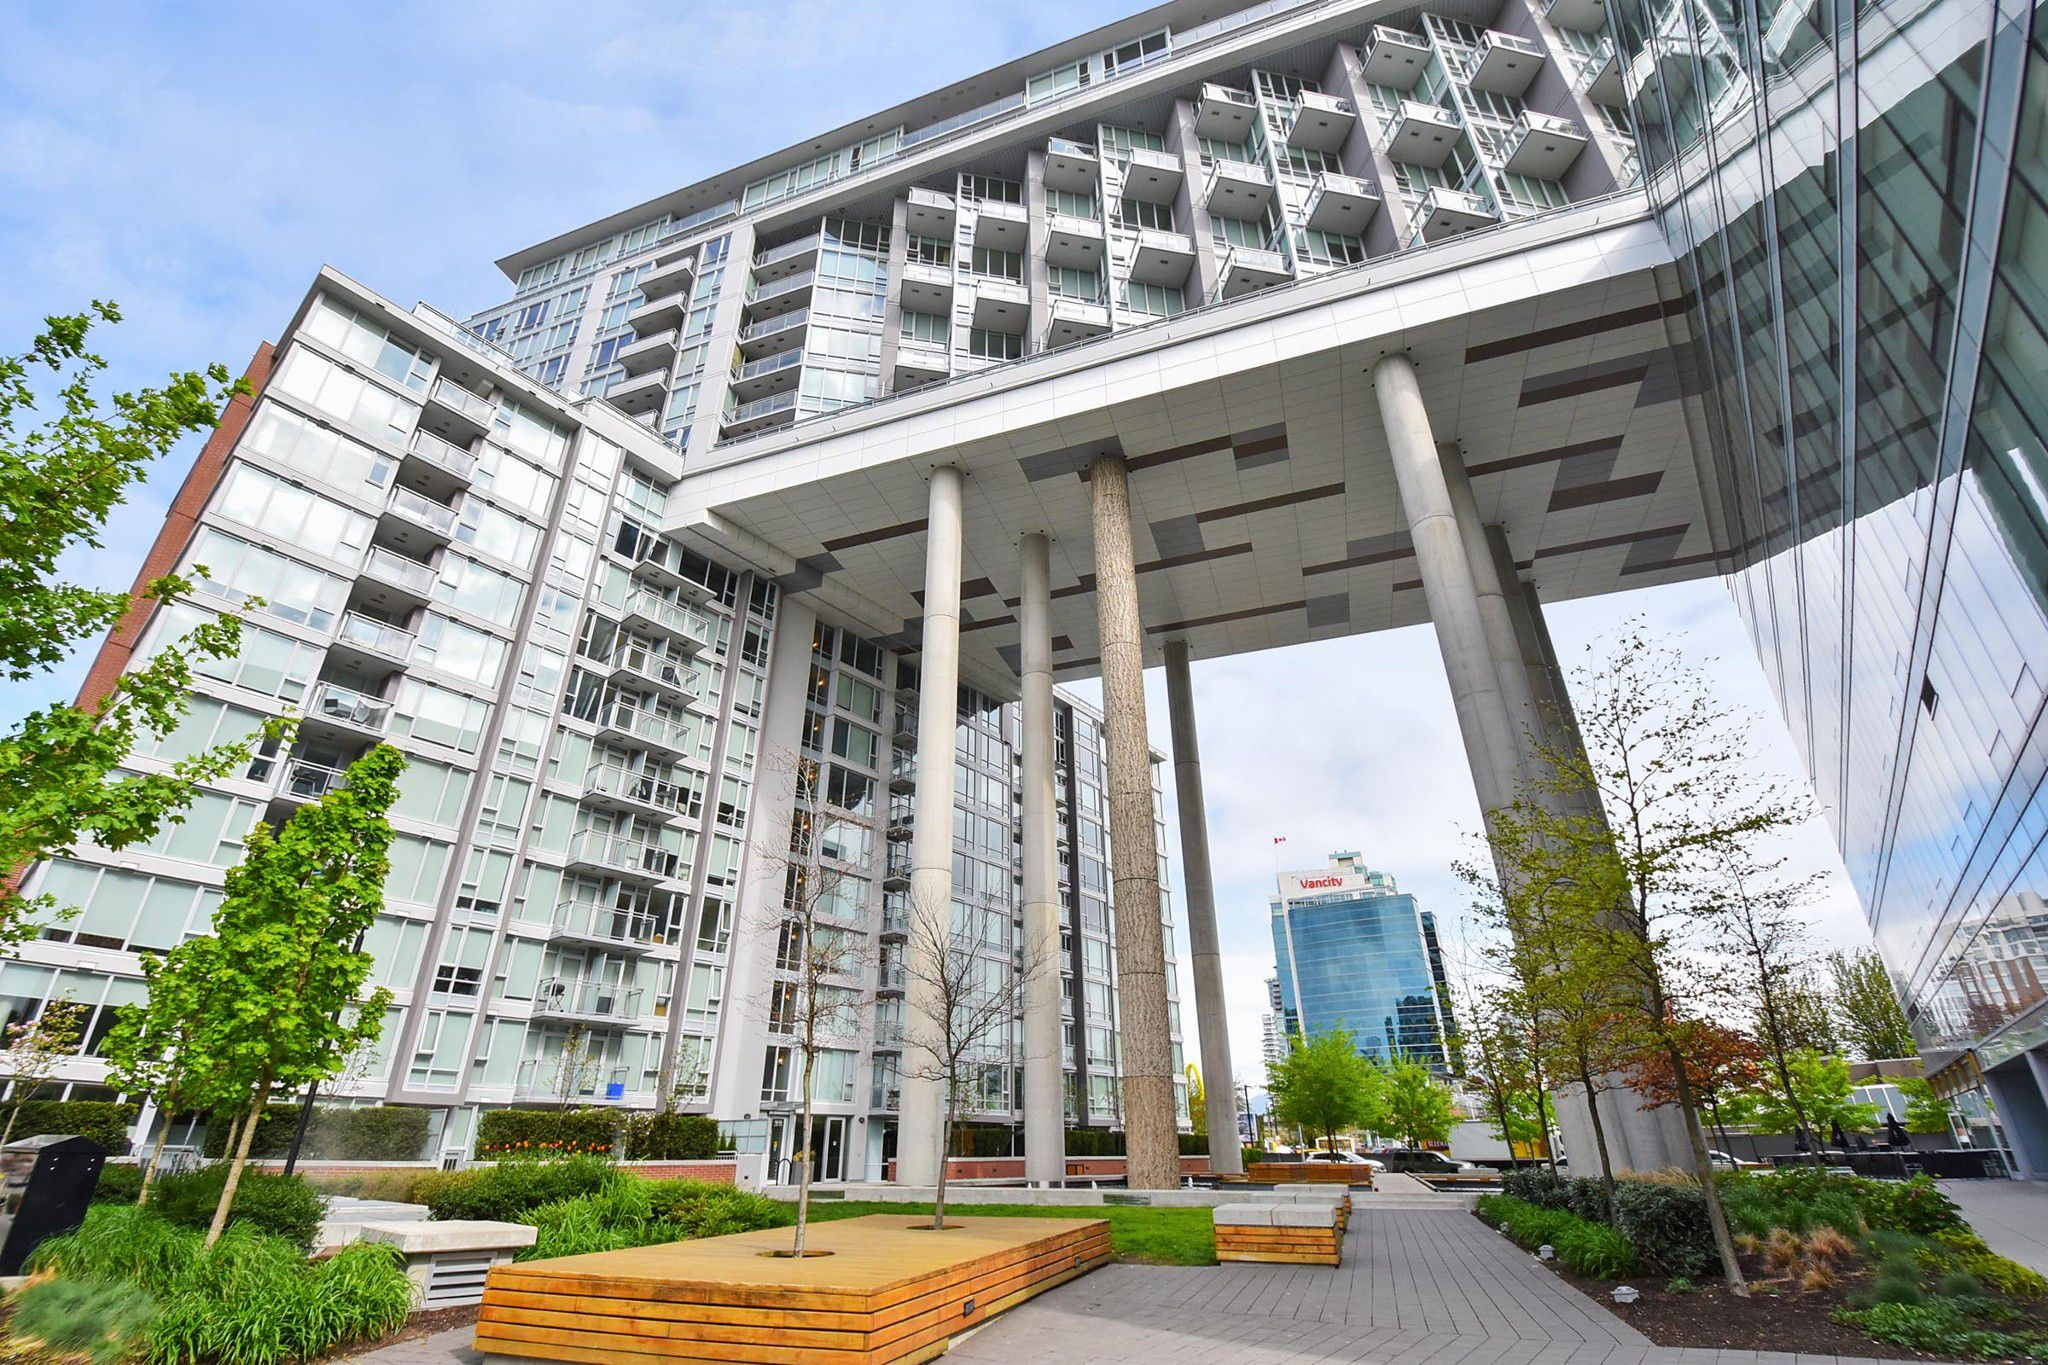 """Main Photo: 206 1618 QUEBEC Street in Vancouver: Mount Pleasant VE Condo for sale in """"CENTRAL"""" (Vancouver East)  : MLS®# R2262451"""